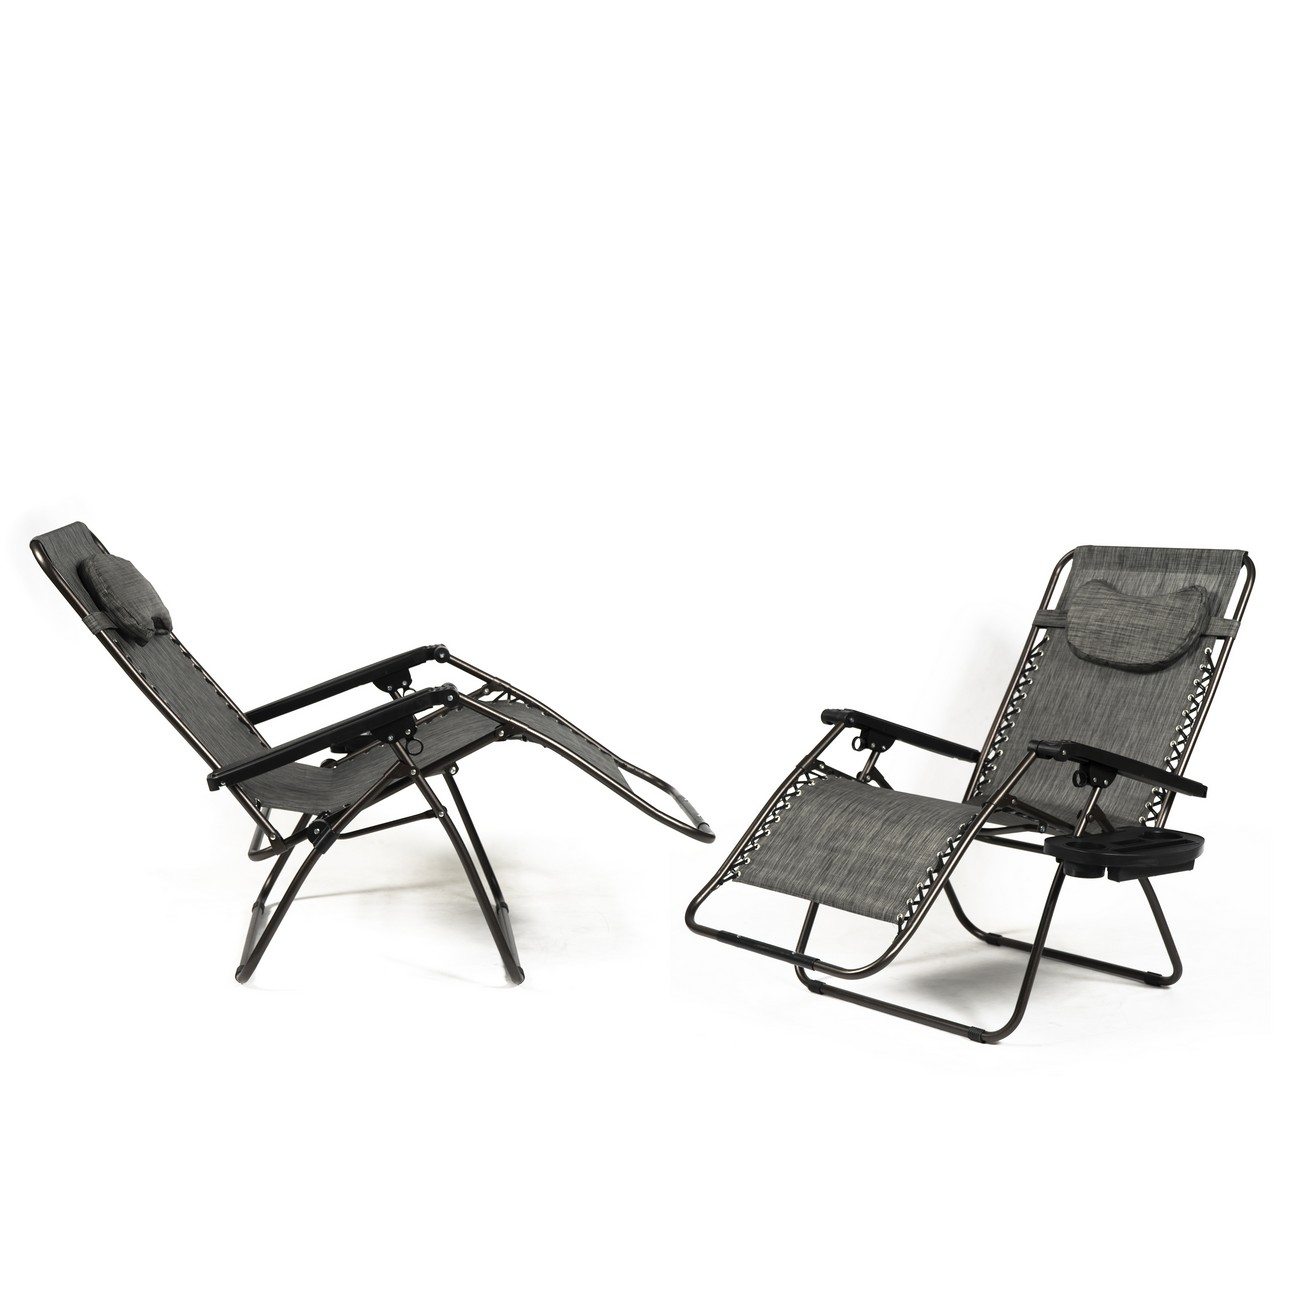 New set of 2 zero gravity chair xl oversize chairs outdoor recliner w tray ebay - Oversized zero gravity lounge chair ...